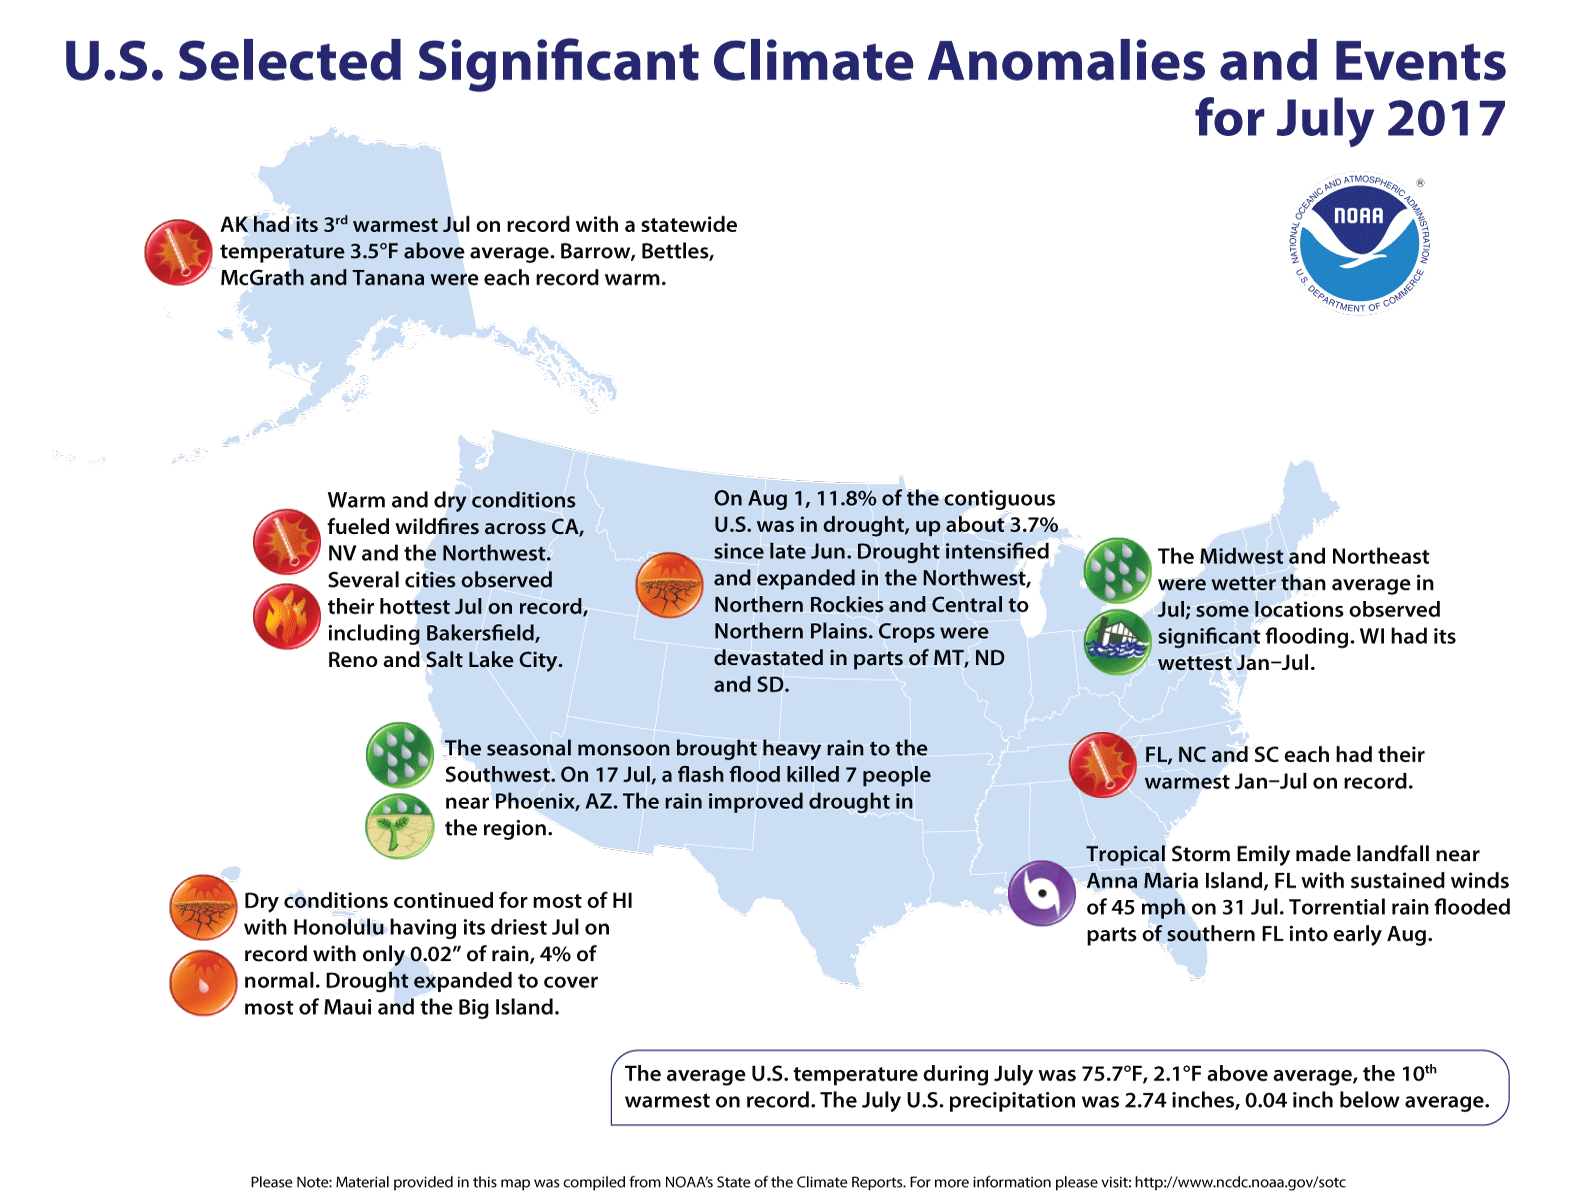 Map of U.S. selected significant climate anomalies and events for July 2017